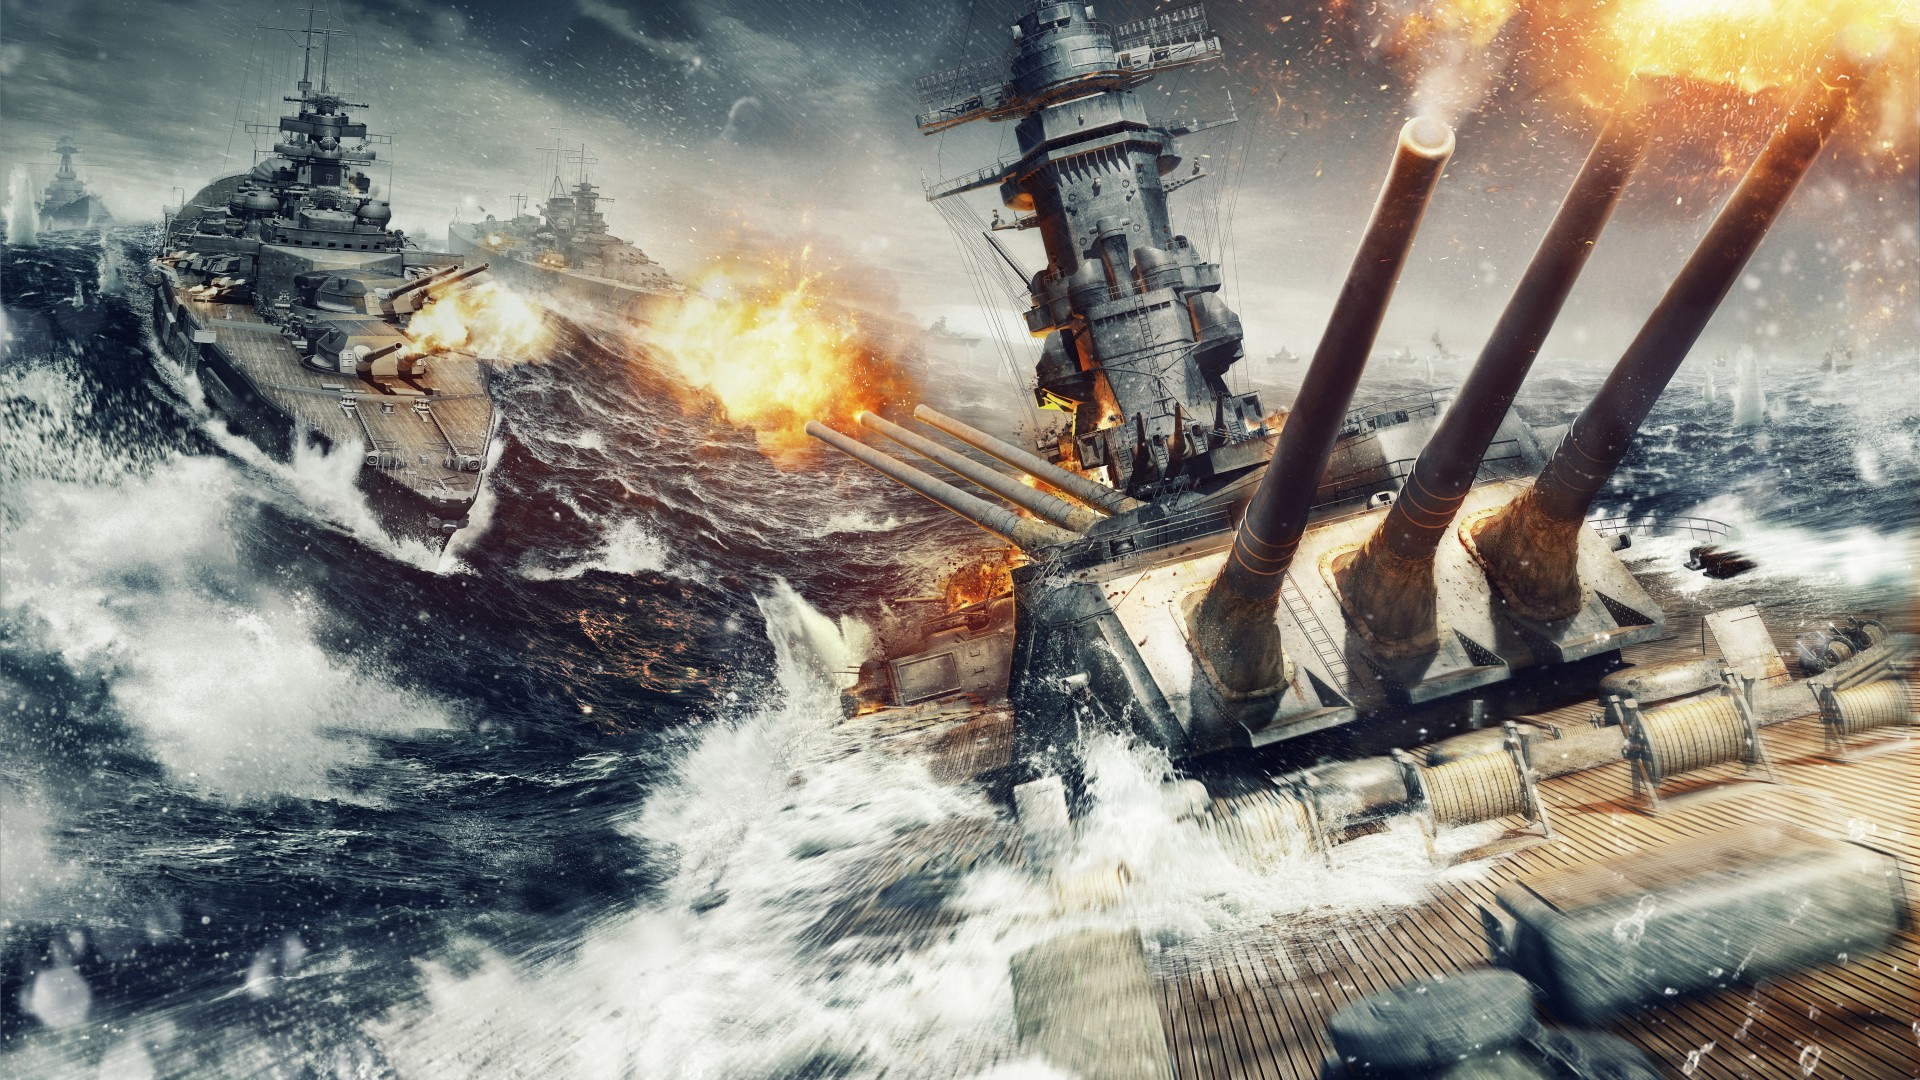 World of Warships, game, MMORPG, simulator, sea, water, battle, fire, ship, storm, screenshot, 4k, 5k, pc, 2015 (horizontal)